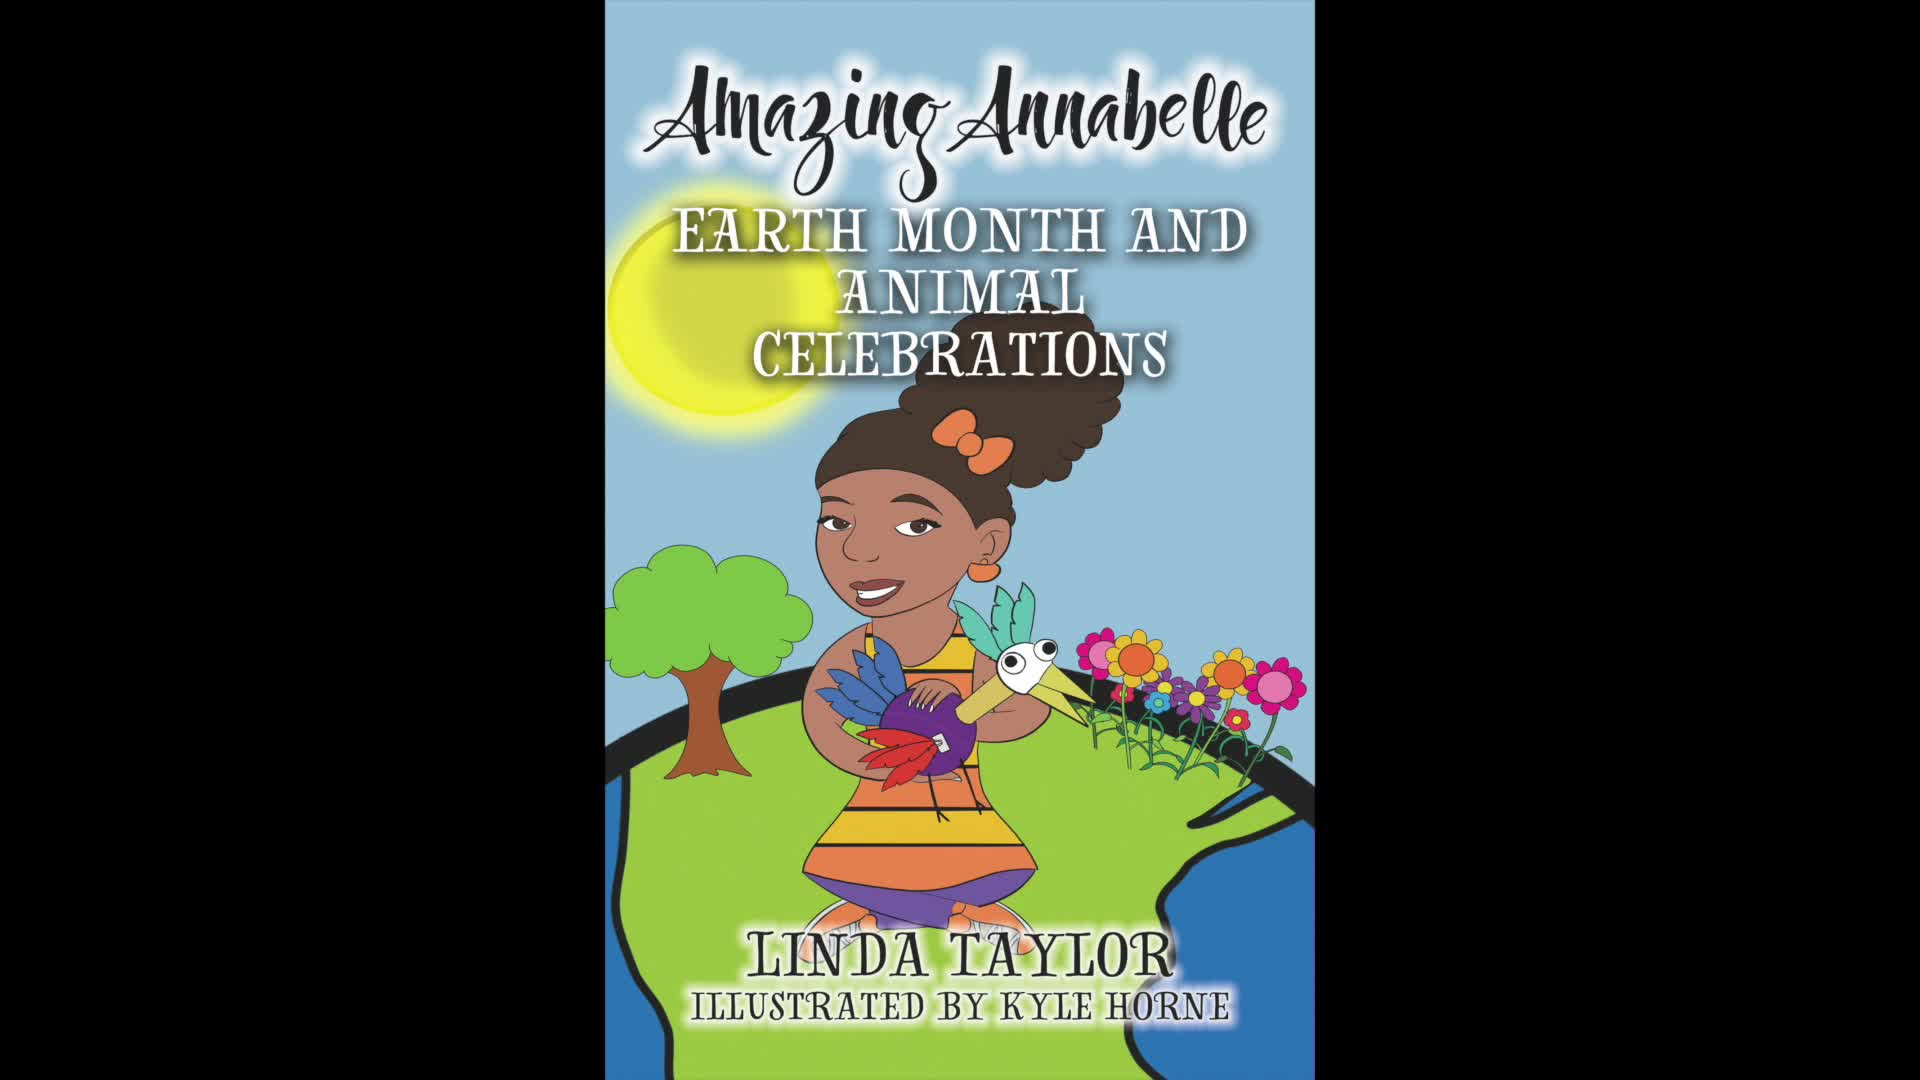 Amazing Annabelle Earth Month And Animal Celebrations Chapter 6